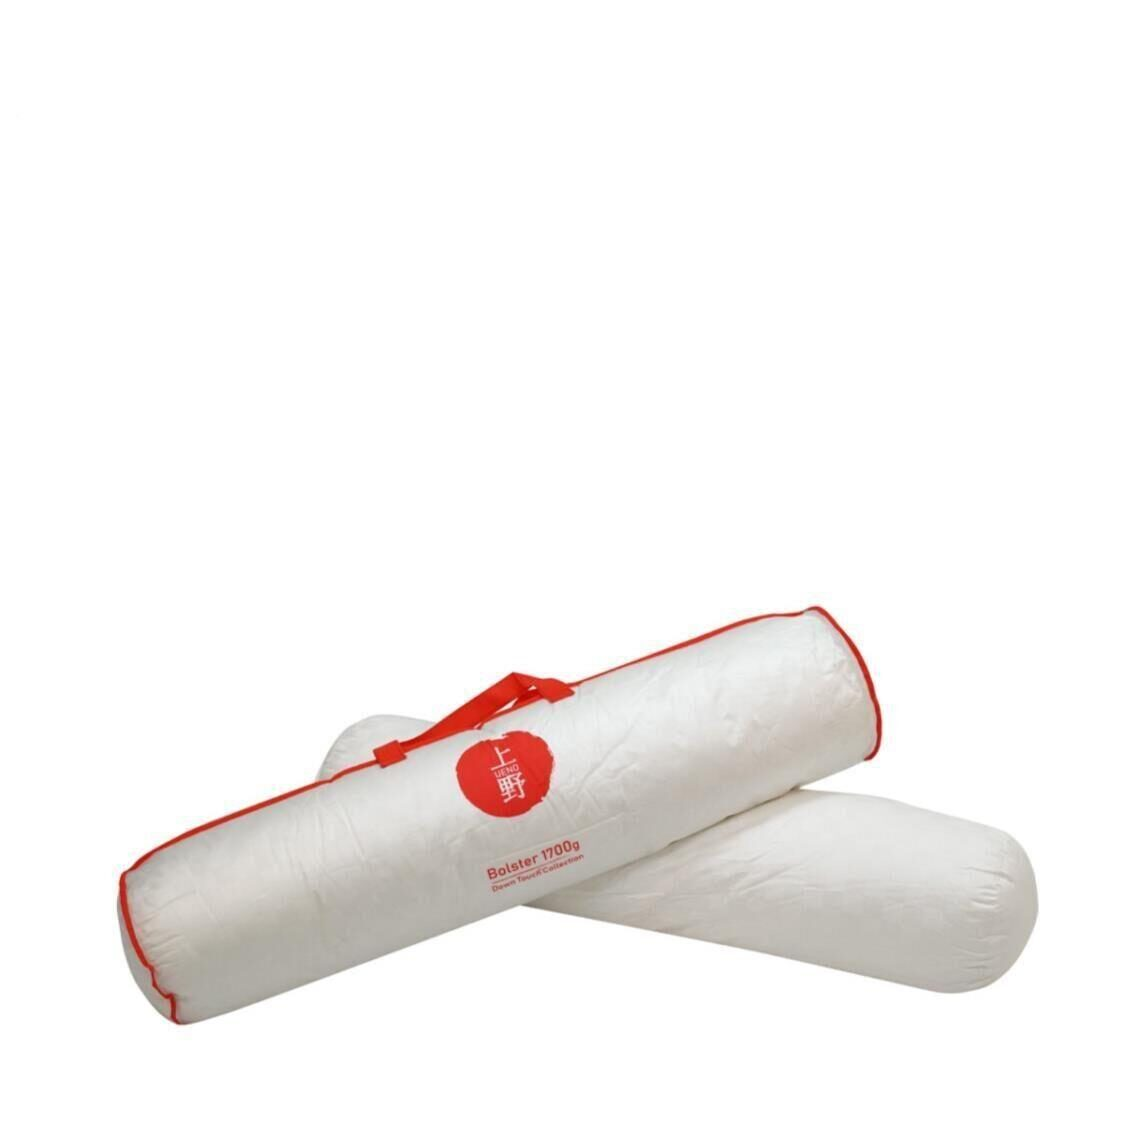 Ueno Down Touch 1700g Bolster